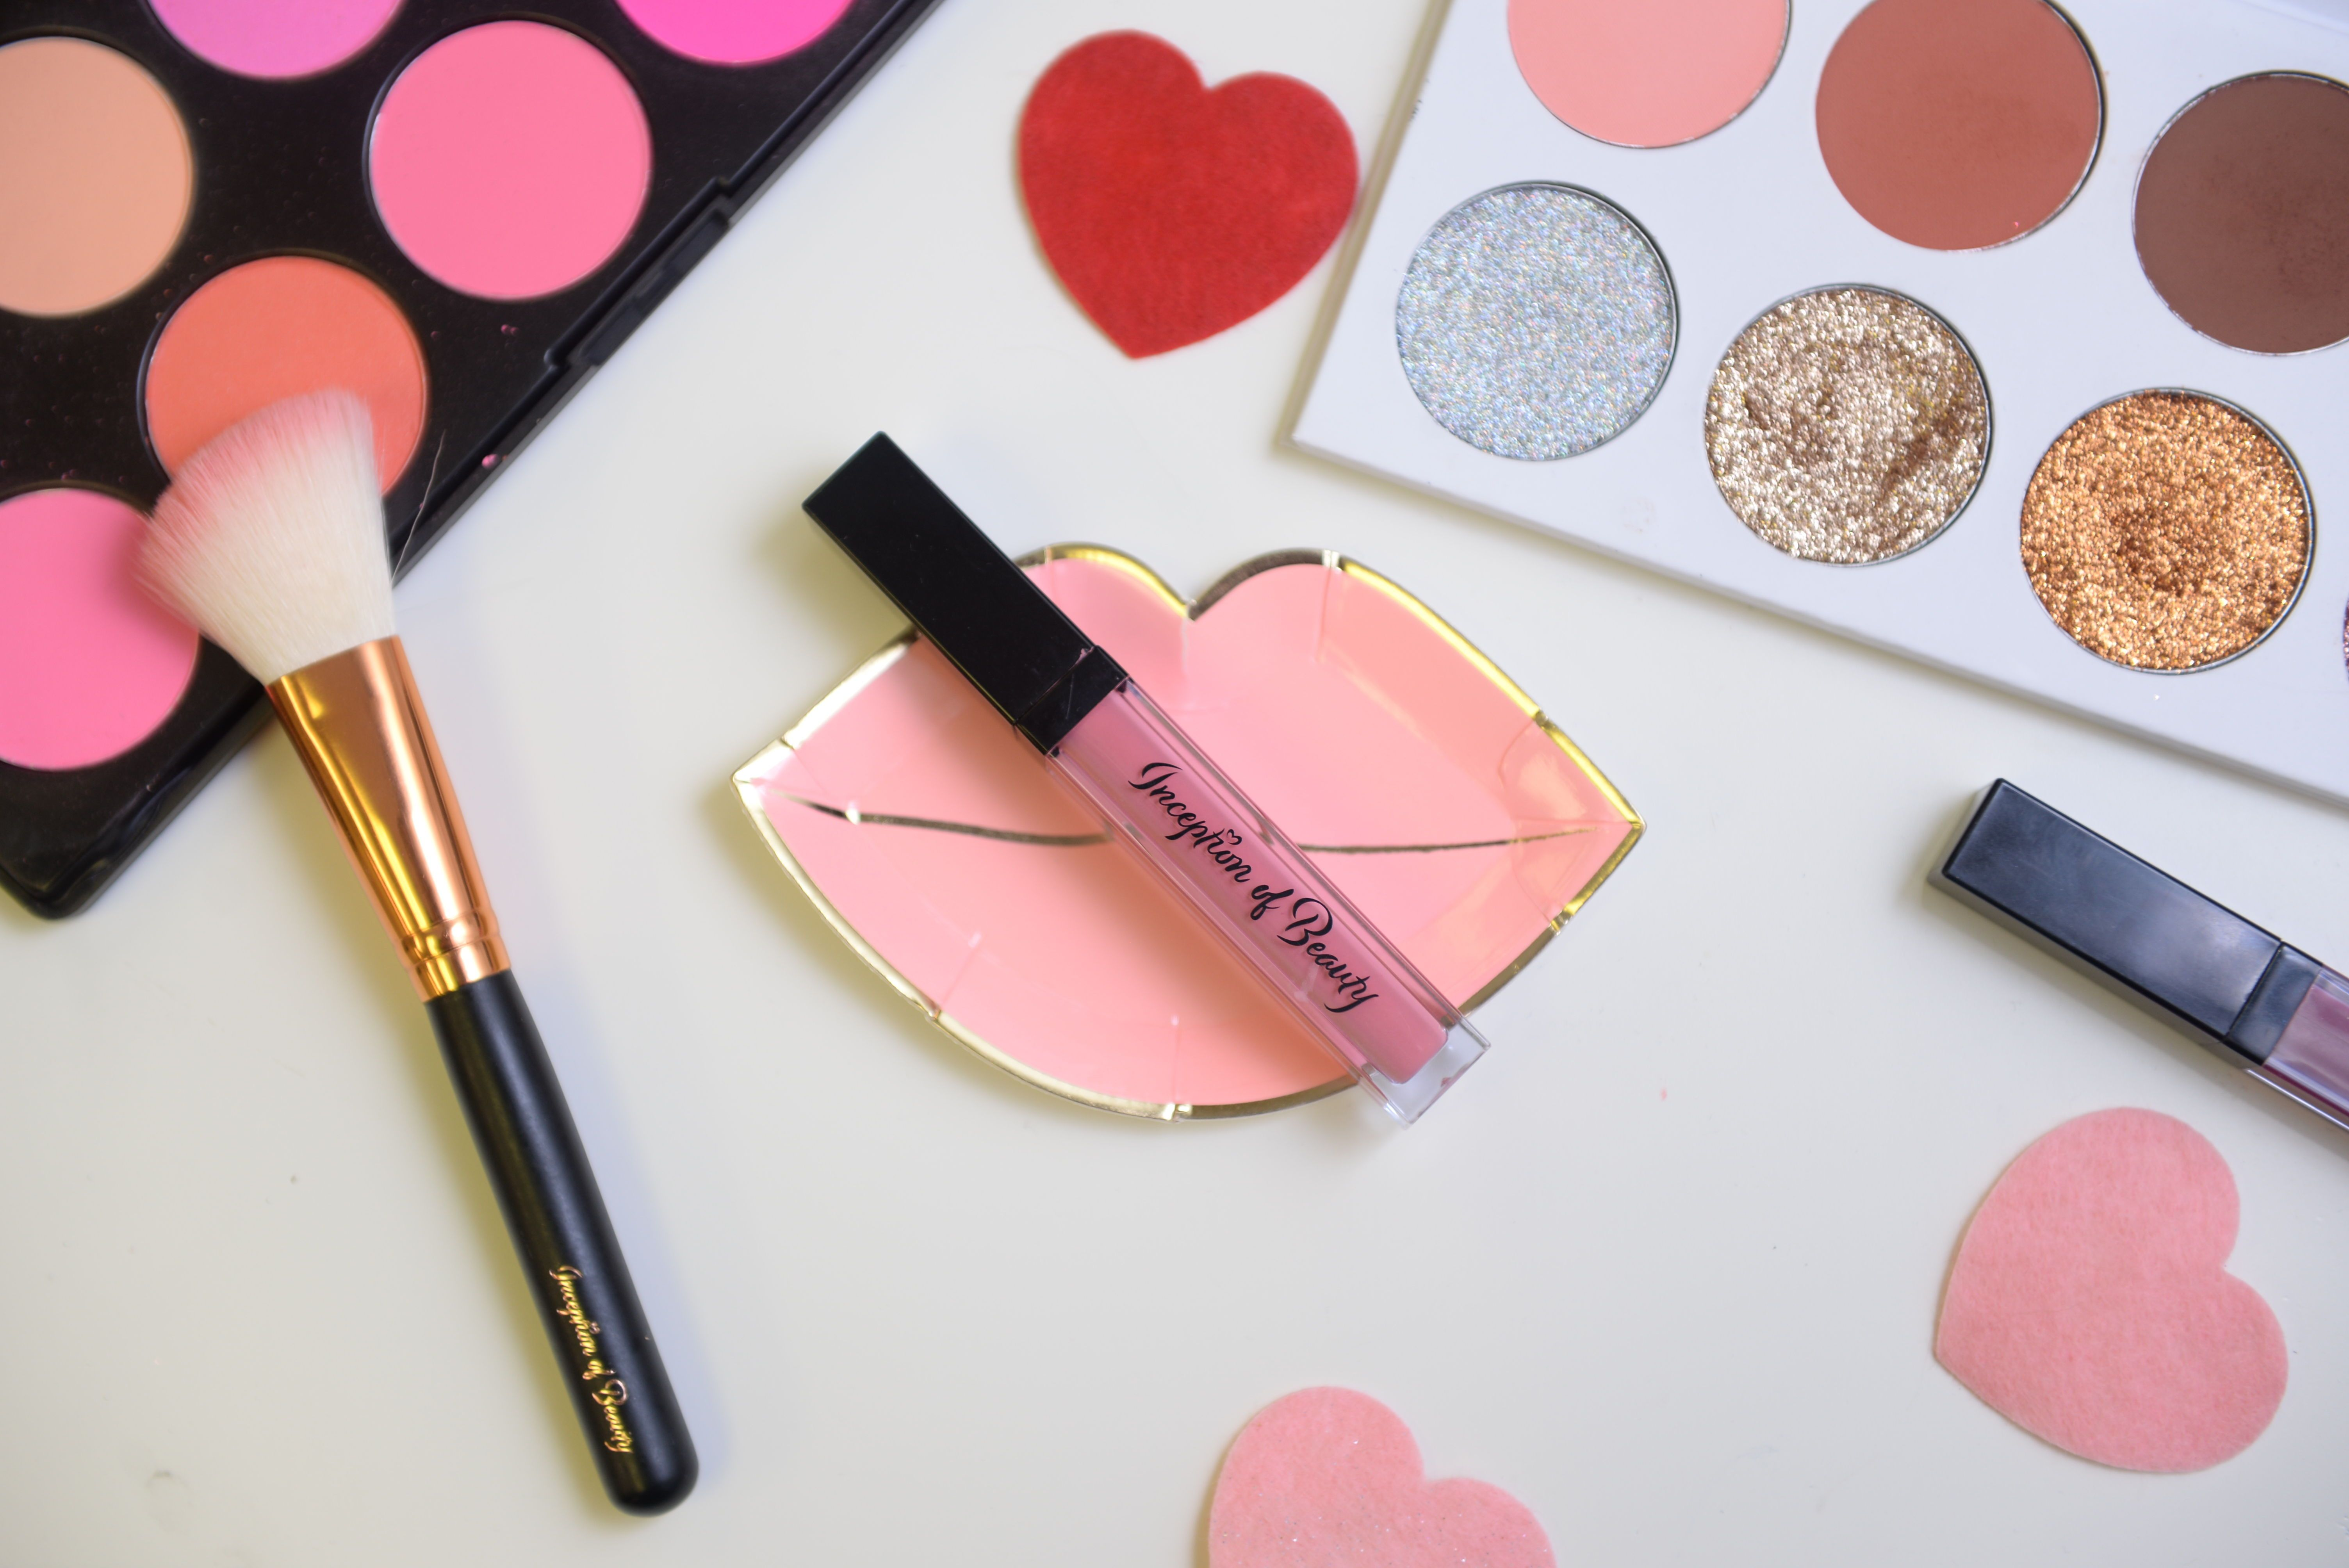 Lipstick, blush palette // Inception of Beauty (With